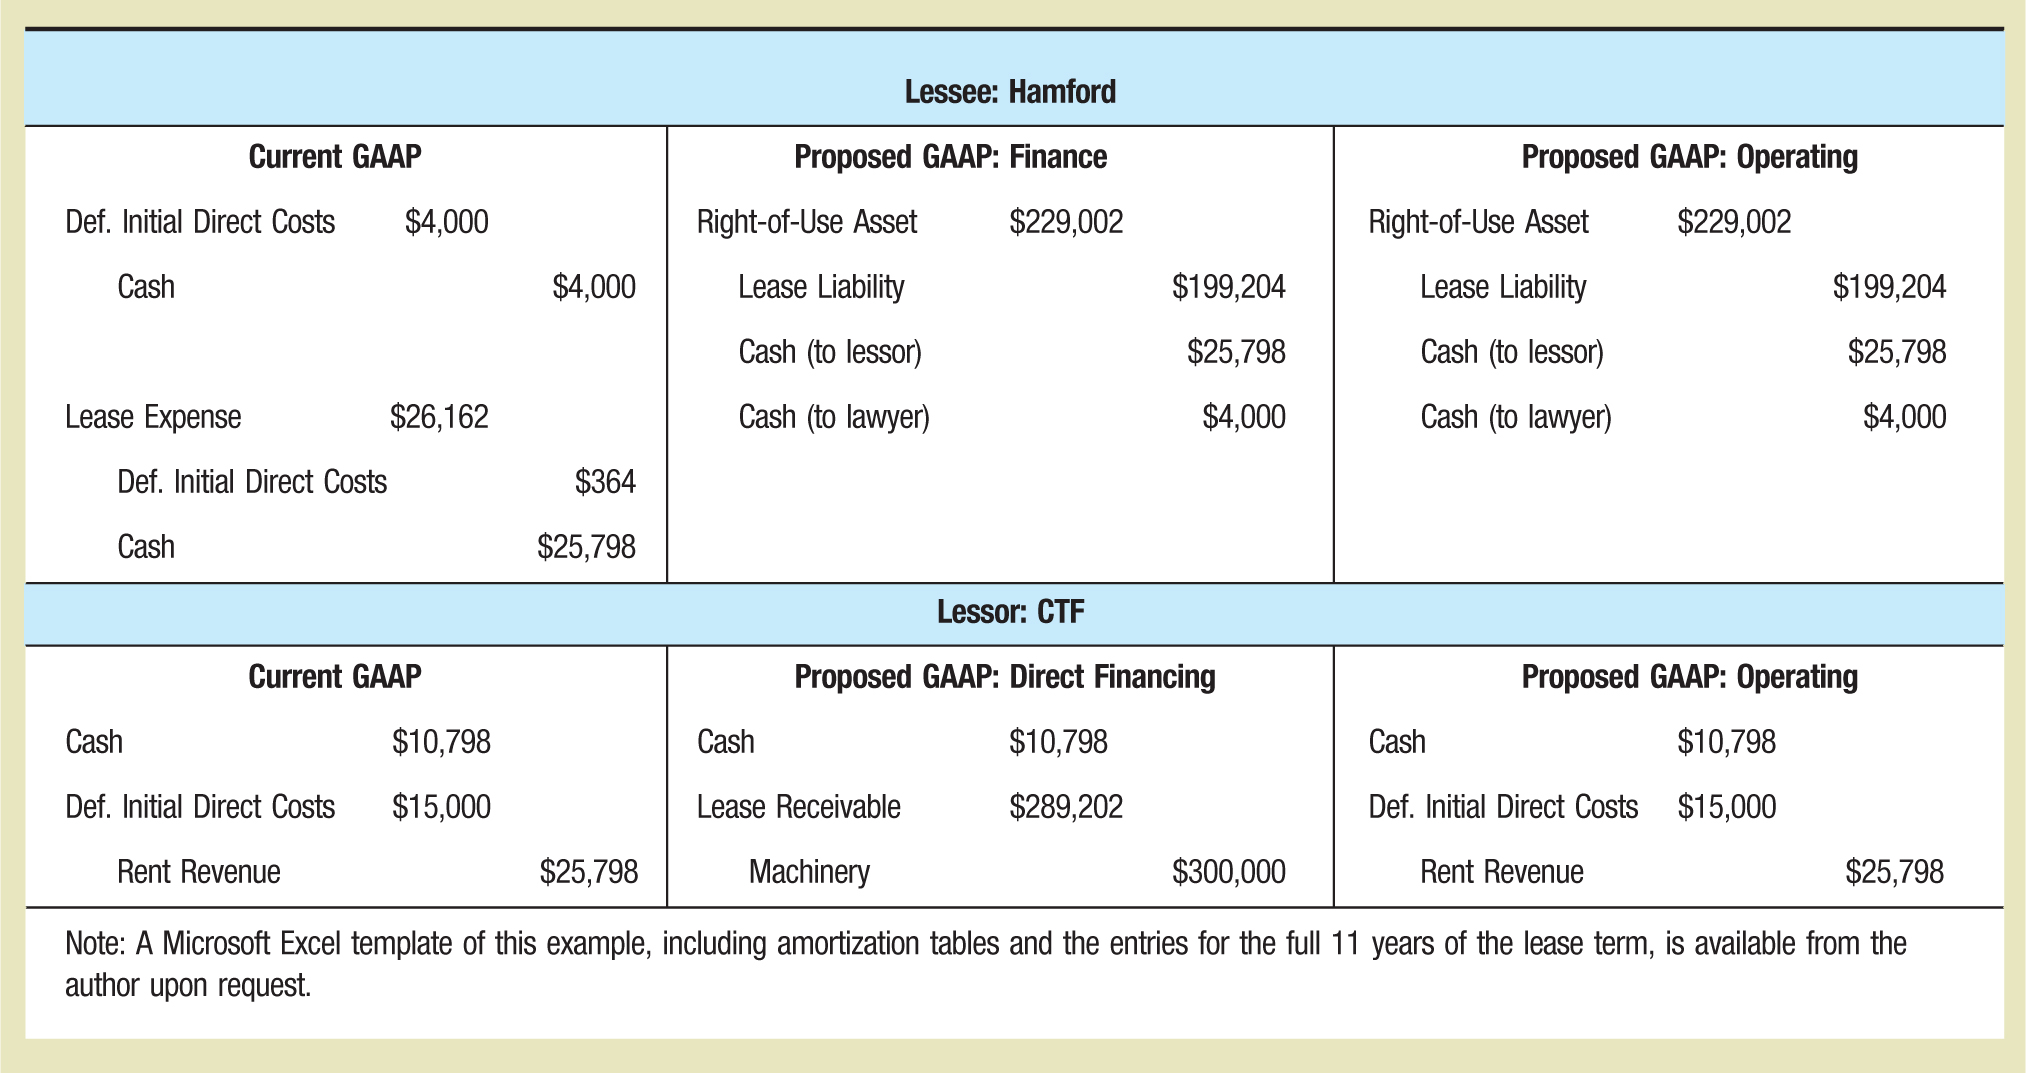 Lessee: Hamford Current GAAP Proposed GAAP: Finance Proposed GAAP: Operating Def. Initial Direct Costs $4,000 Right-of-Use Asset $229,002 Right-of-Use Asset $229,002 Cash $4,000 Lease Liability $199,204 Lease Liability $199,204 Cash (to lessor) $25,798 Cash (to lessor) $25,798 Lease Expense $26,162 Cash (to lawyer) $4,000 Cash (to lawyer) $4,000 Def. Initial Direct Costs $364 Cash $25,798 Lessor: CTF Current GAAP Proposed GAAP: Direct Financing Proposed GAAP: Operating Cash $10,798 Cash $10,798 Cash $10,798 Def. Initial Direct Costs $15,000 Lease Receivable $289,202 Def. Initial Direct Costs $15,000 Rent Revenue $25,798 Machinery $300,000 Rent Revenue $25,798 Note: A Microsoft Excel template of this example, including amortization tables and the entries for the full 11 years of the lease term, is available from the author upon request.